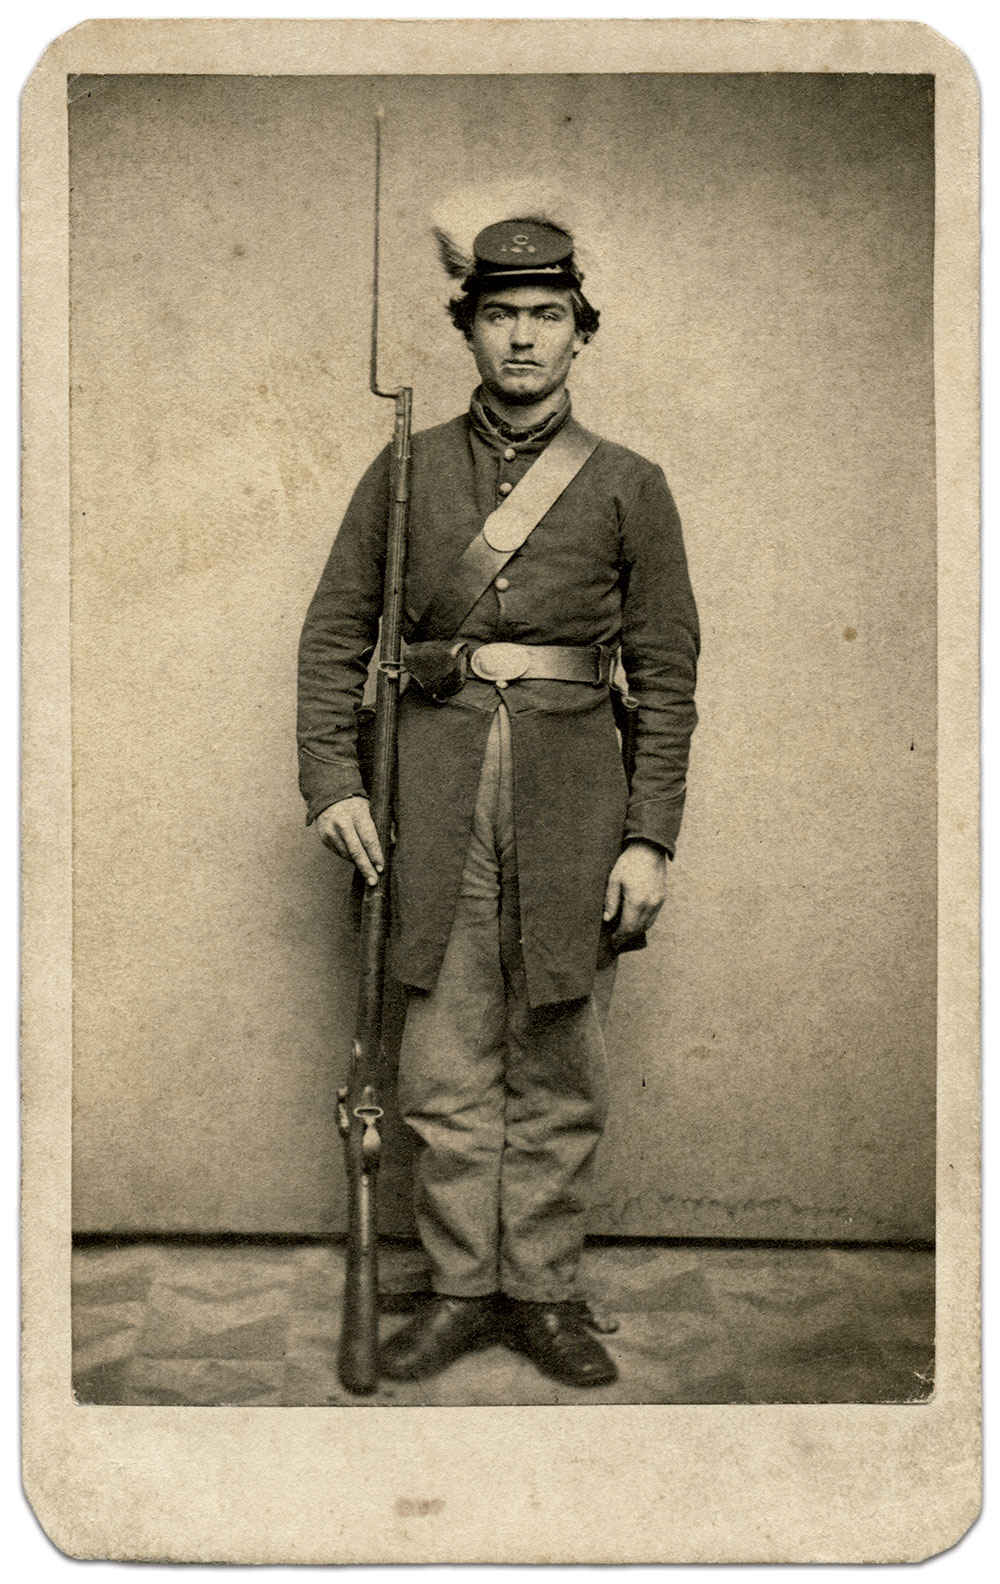 Carte de visite by Bell & Brother of Washington, D.C. Rick Carlile Collection.